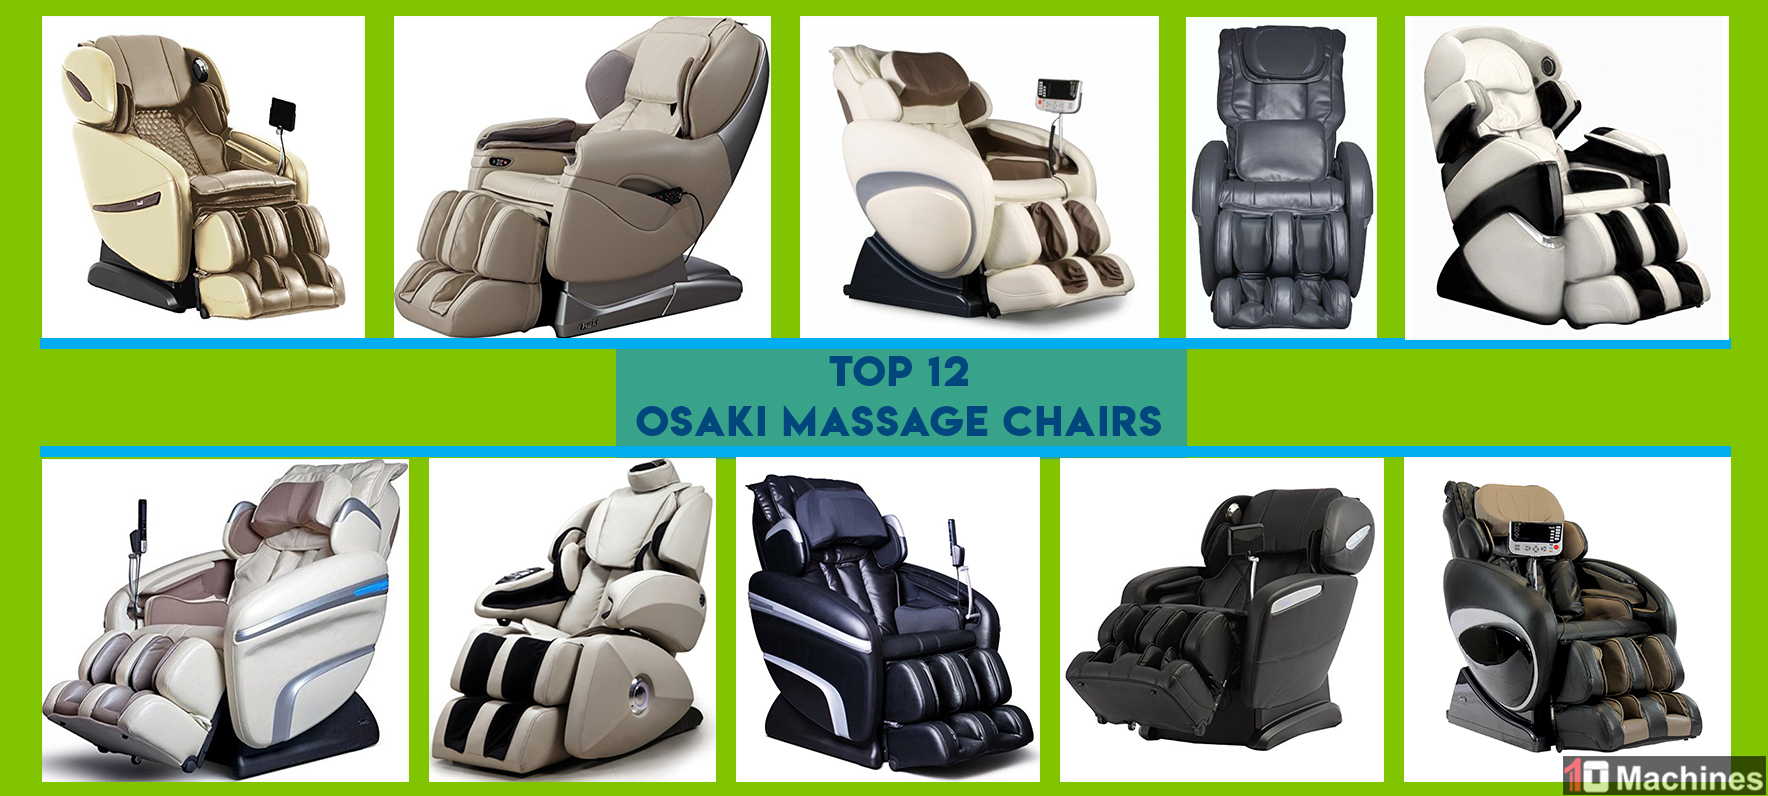 Best Osaki Massage Chairs